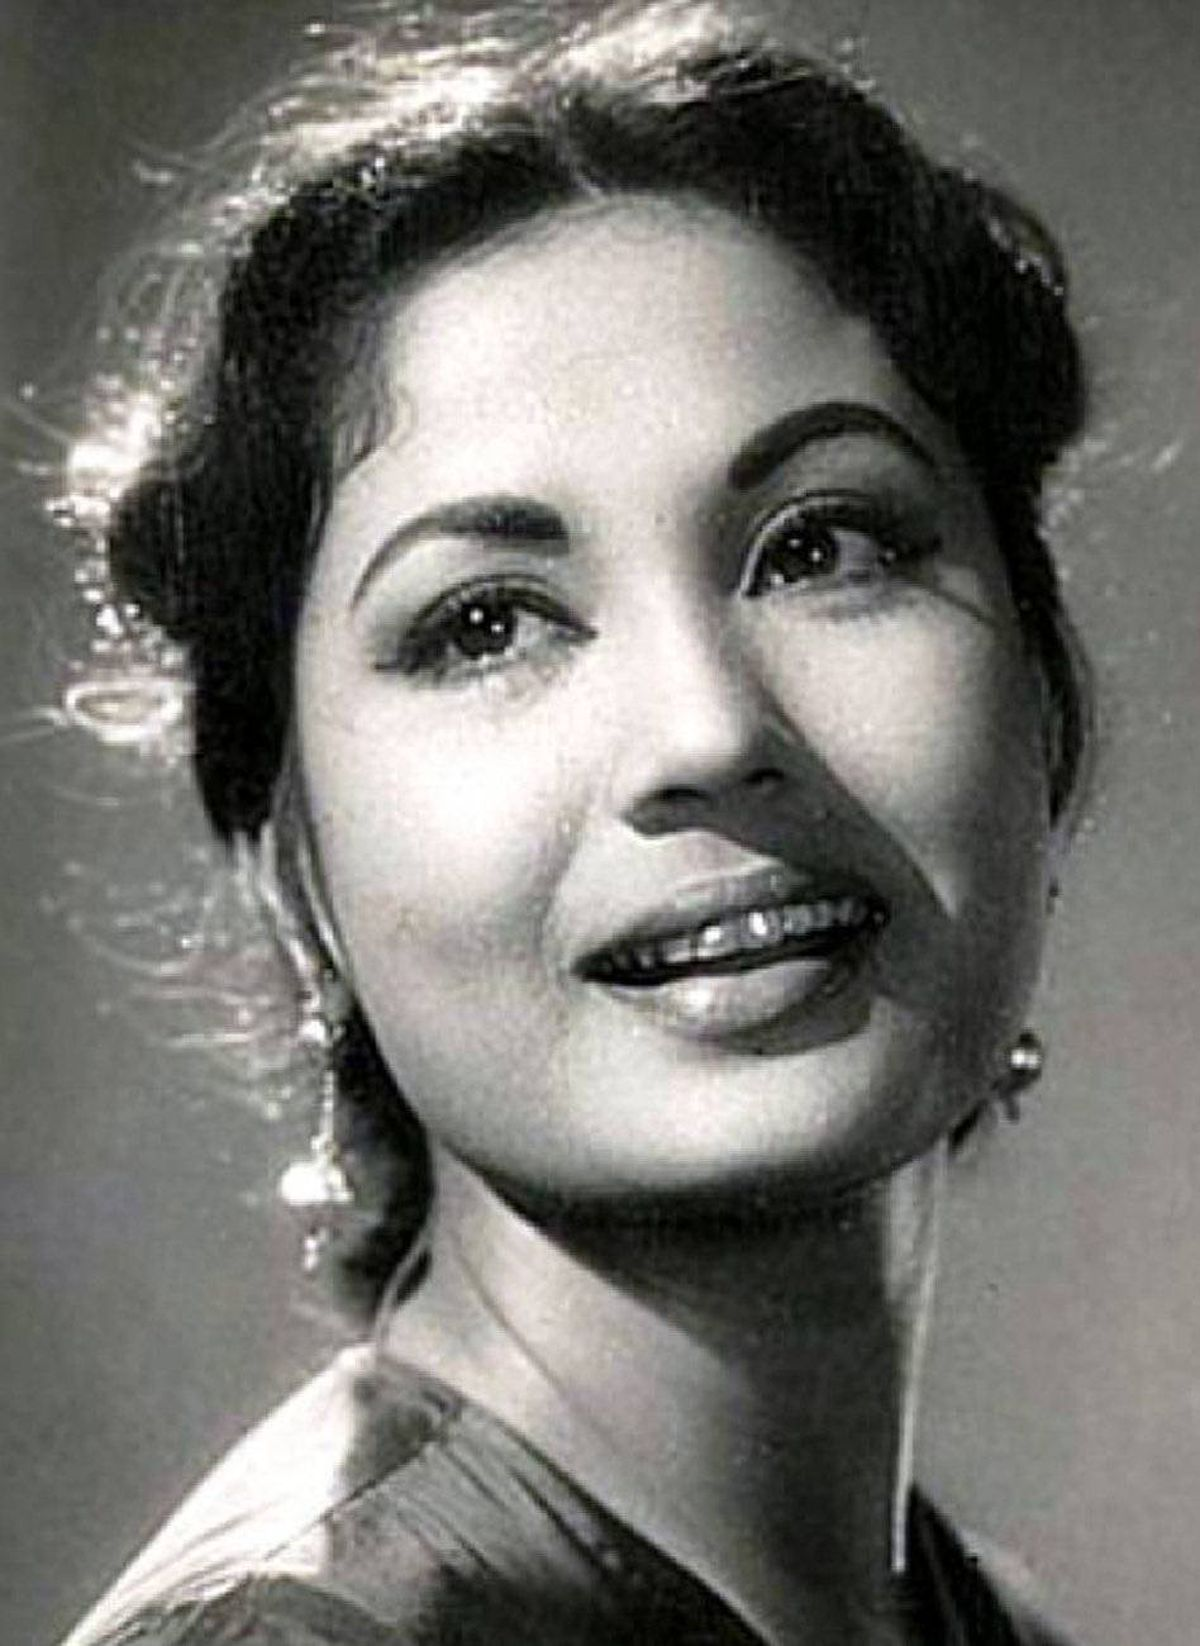 """Meena Kumari Bollywood's """"Tragedy Queen,"""" Kumari is best known for her roles as an alcoholic wife in the 1962 film Sahib Bibi Aur Ghulam (still regarded as one of the best performances of Hindi cinema) and as a courtesan who falls in love with a local nobleman in 1972's Pakeeza. Devastatingly, her life off-screen soon came to reflect her troubled characters. She took her own life at the age of 39, just weeks after Pakeeza's release."""